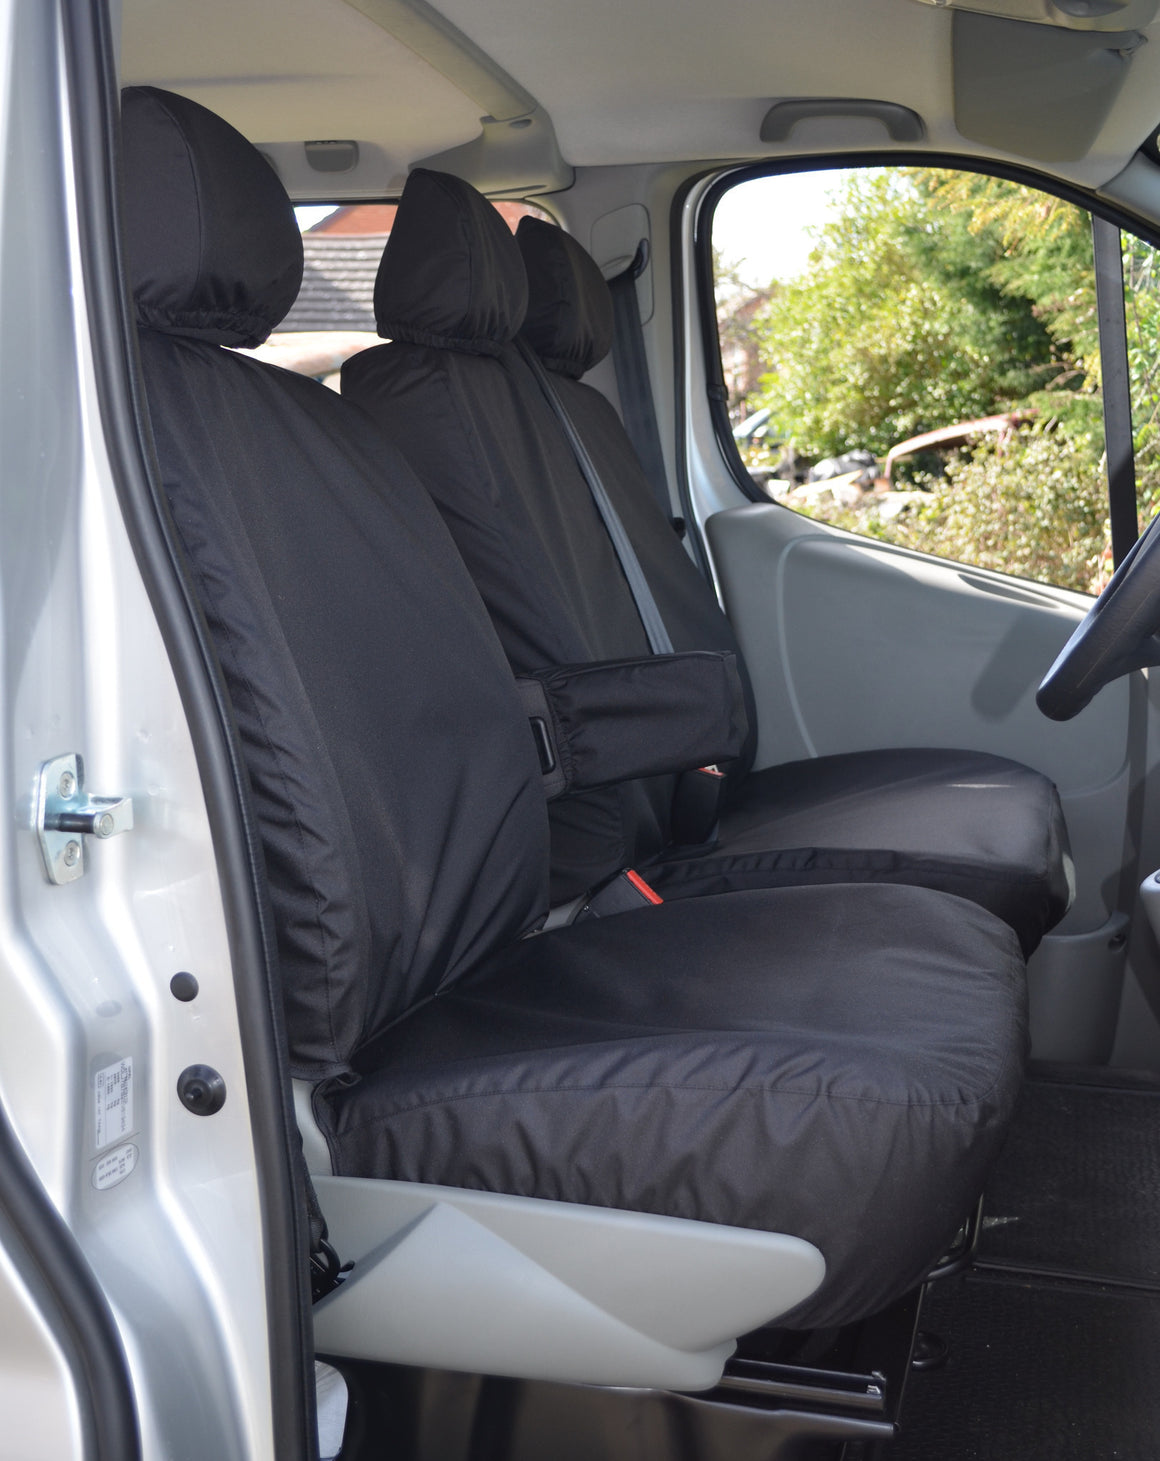 Nissan Primastar 2006 - 2014 Tailored Front Seat Covers